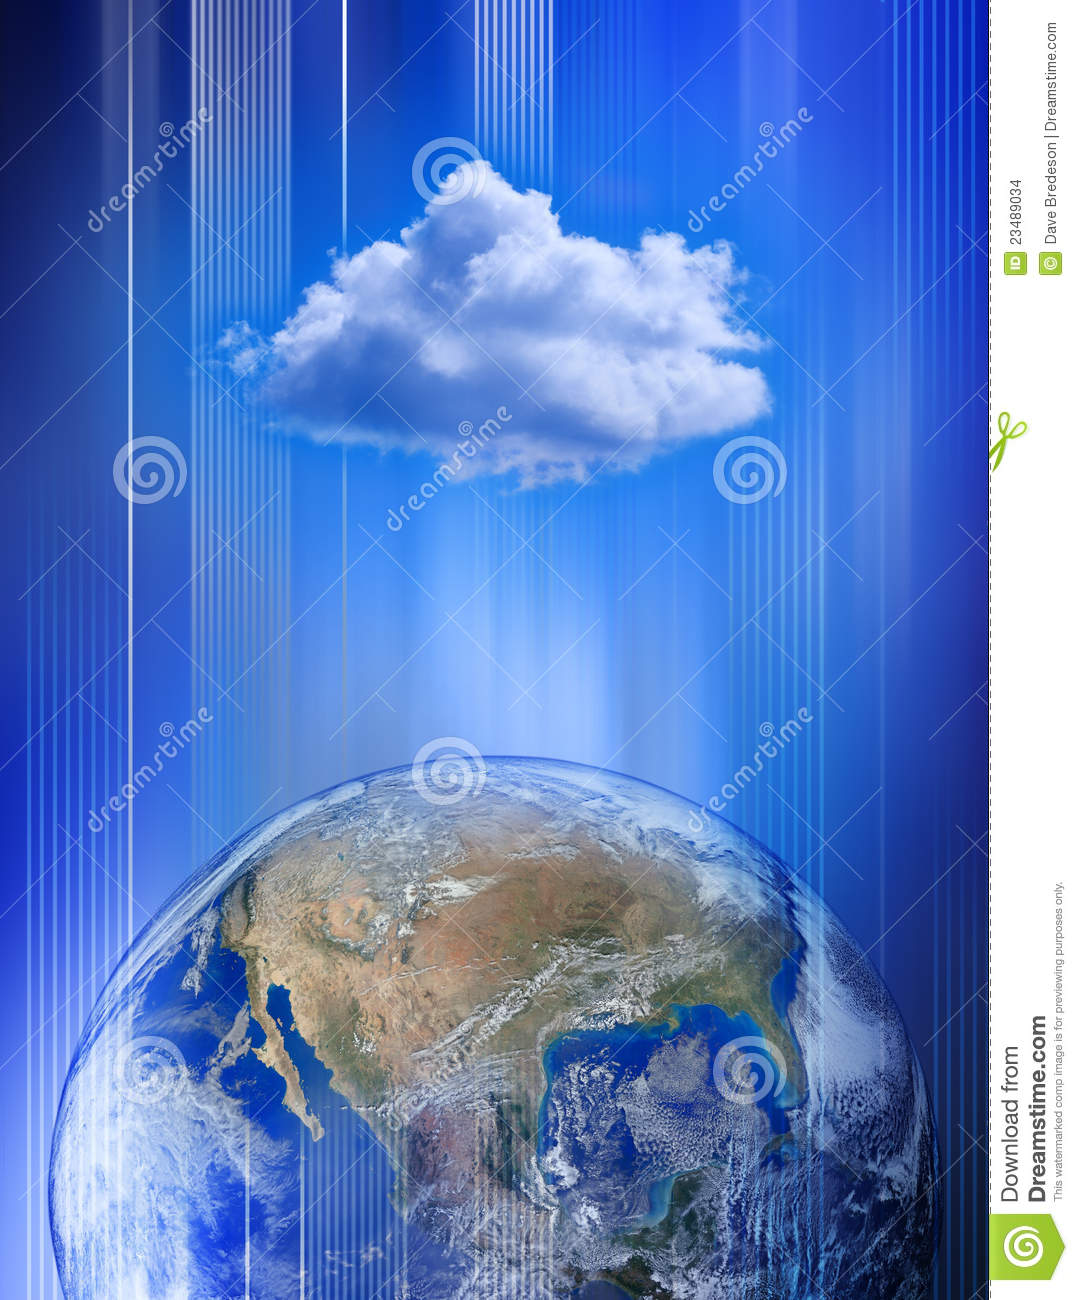 Networking Cloud Computing: Global Cloud Computing Network Stock Illustration